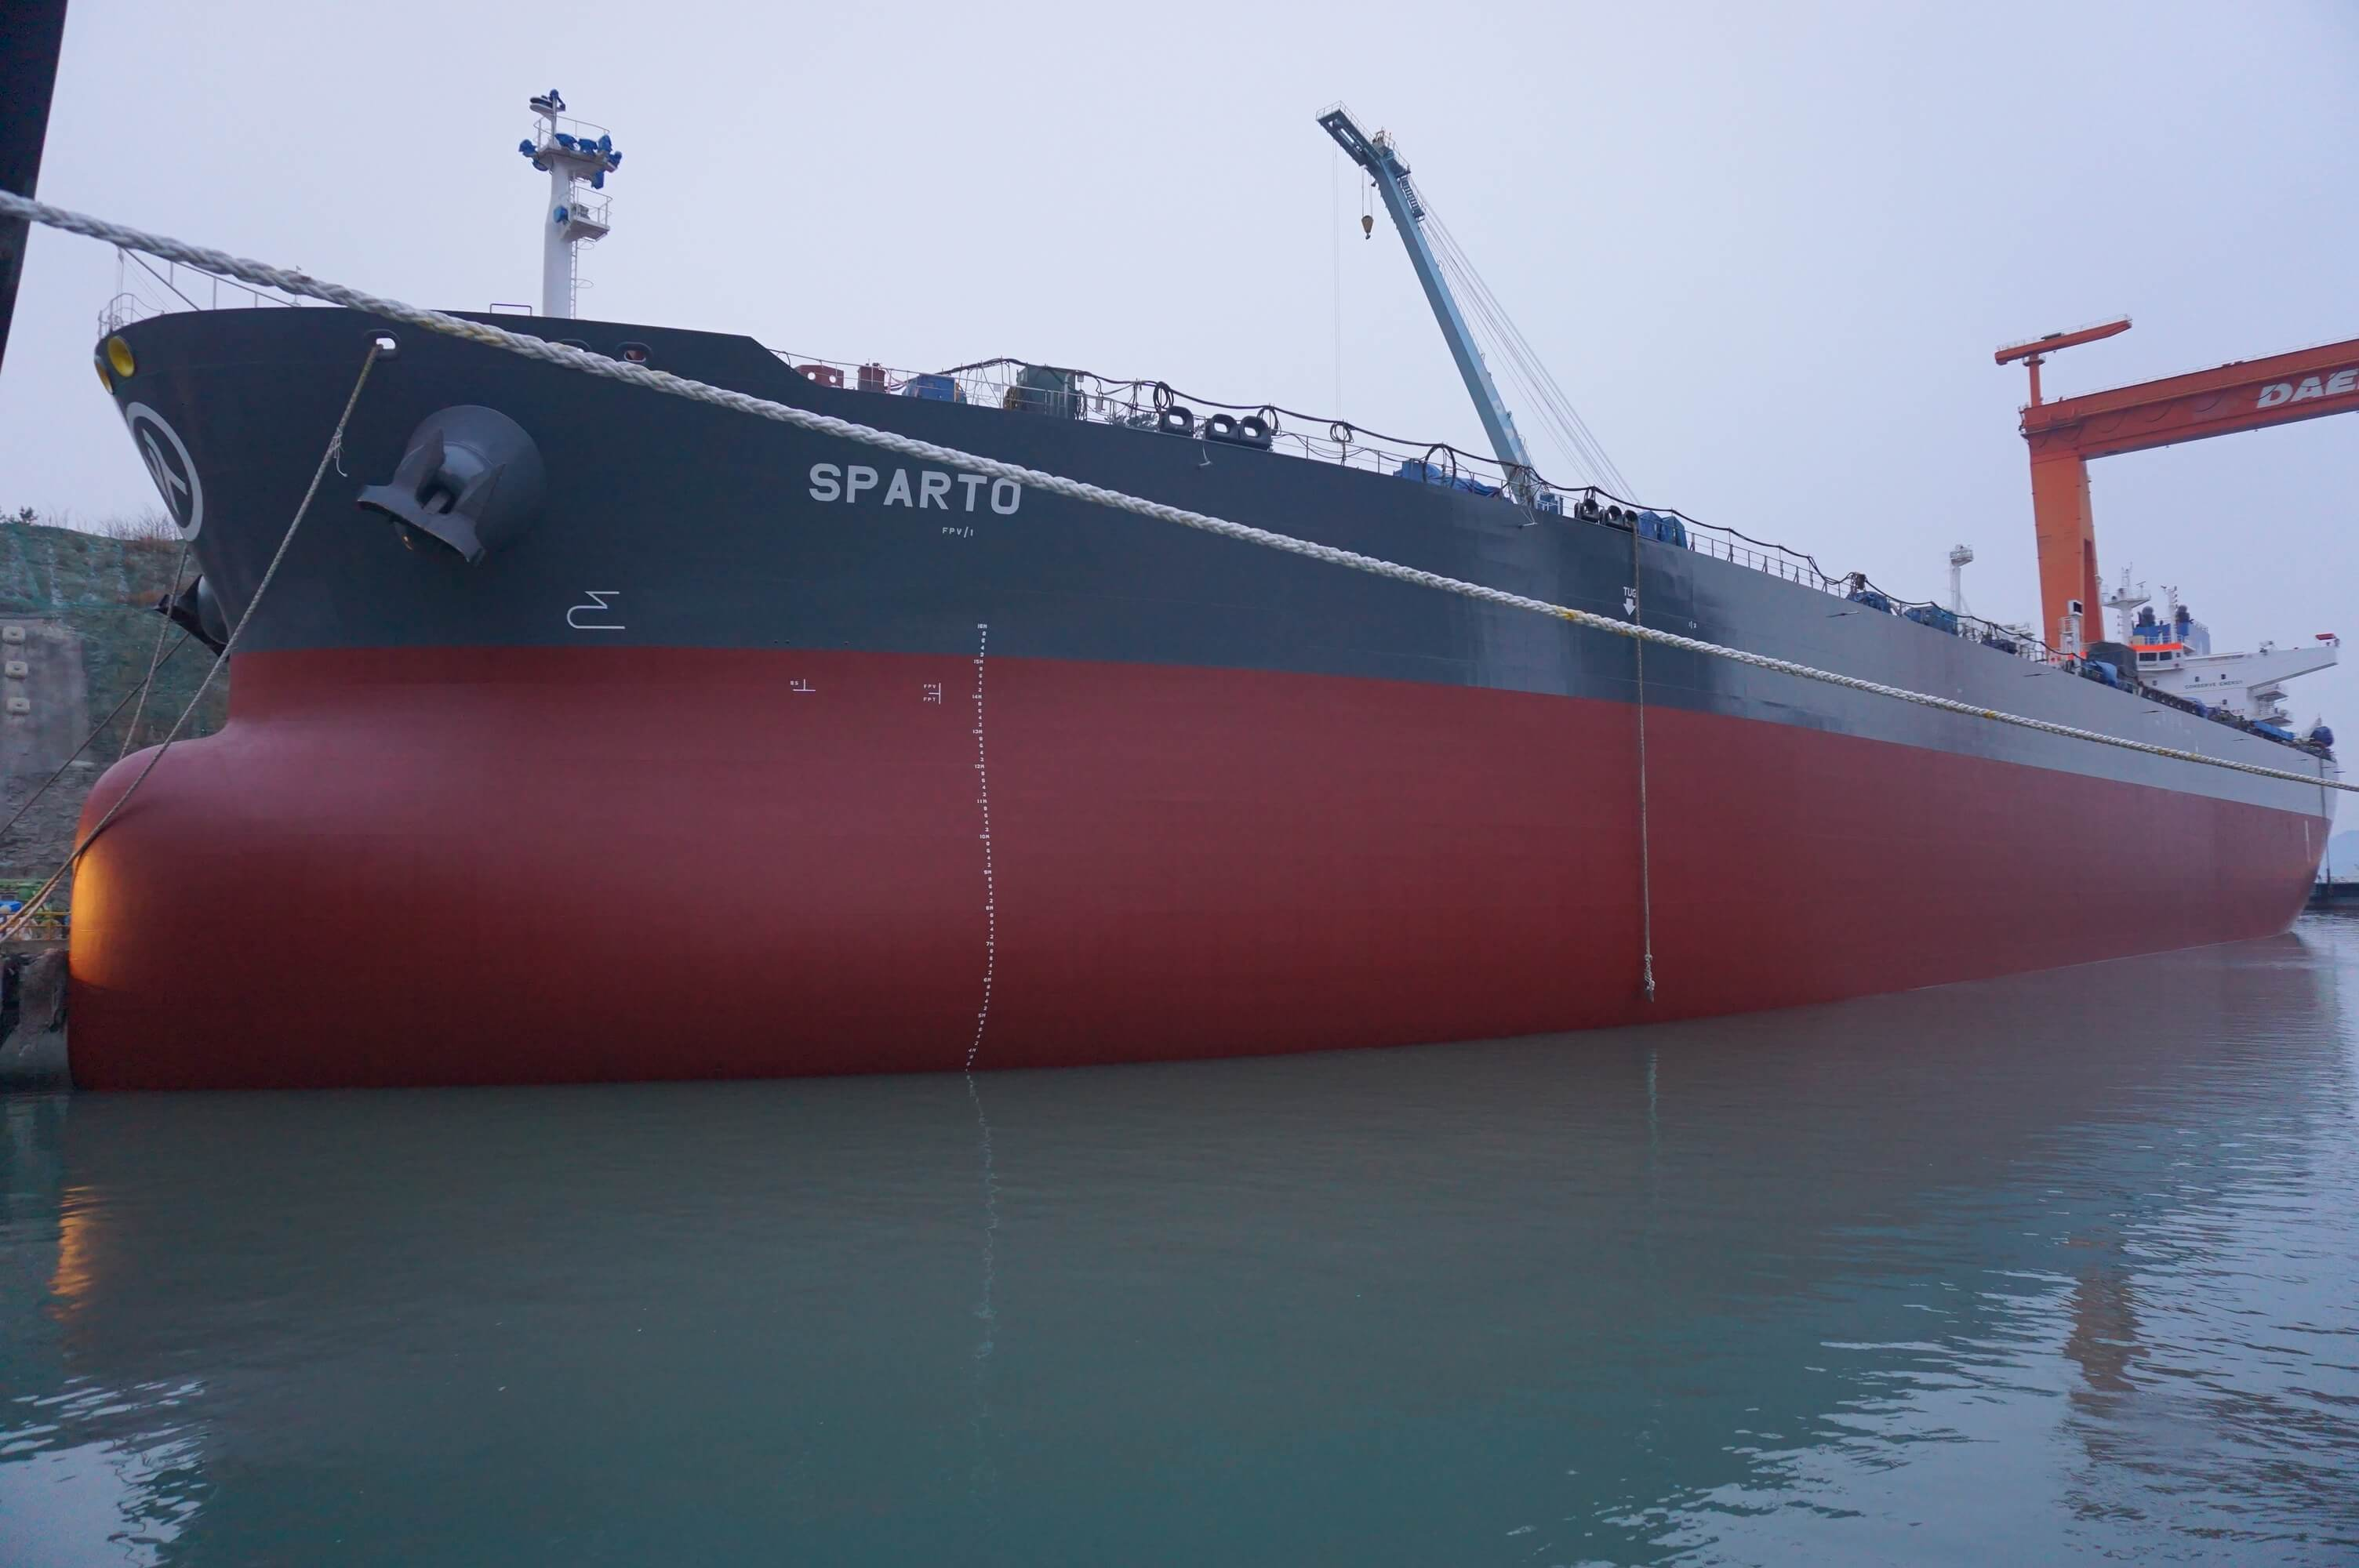 Delivery of M/T Sparto